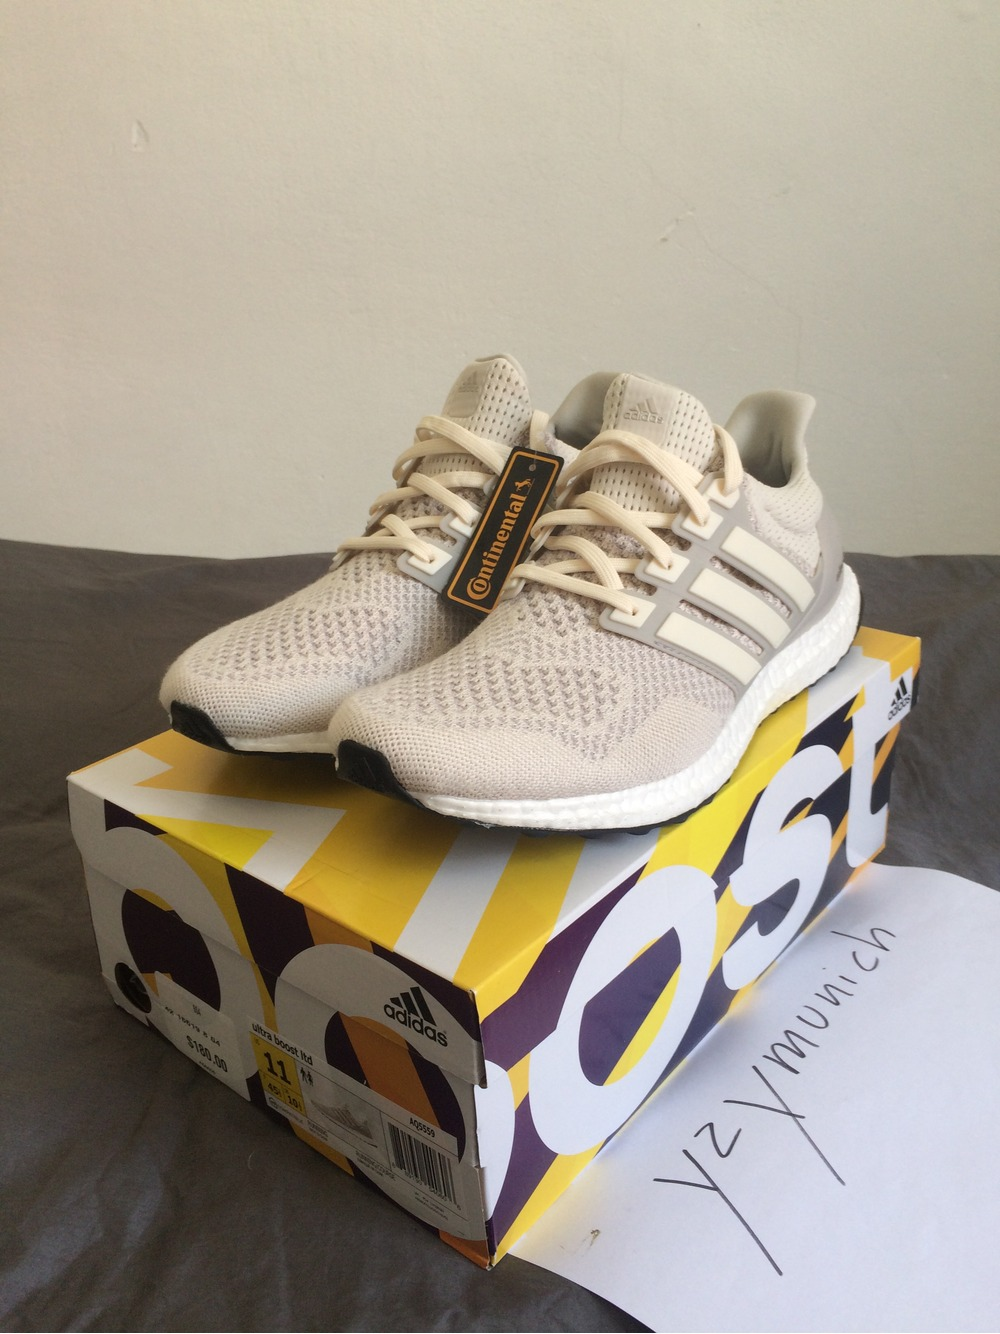 a02a382f6c59c Adidas Ultra Boost Cream Chalk wallbank-lfc.co.uk